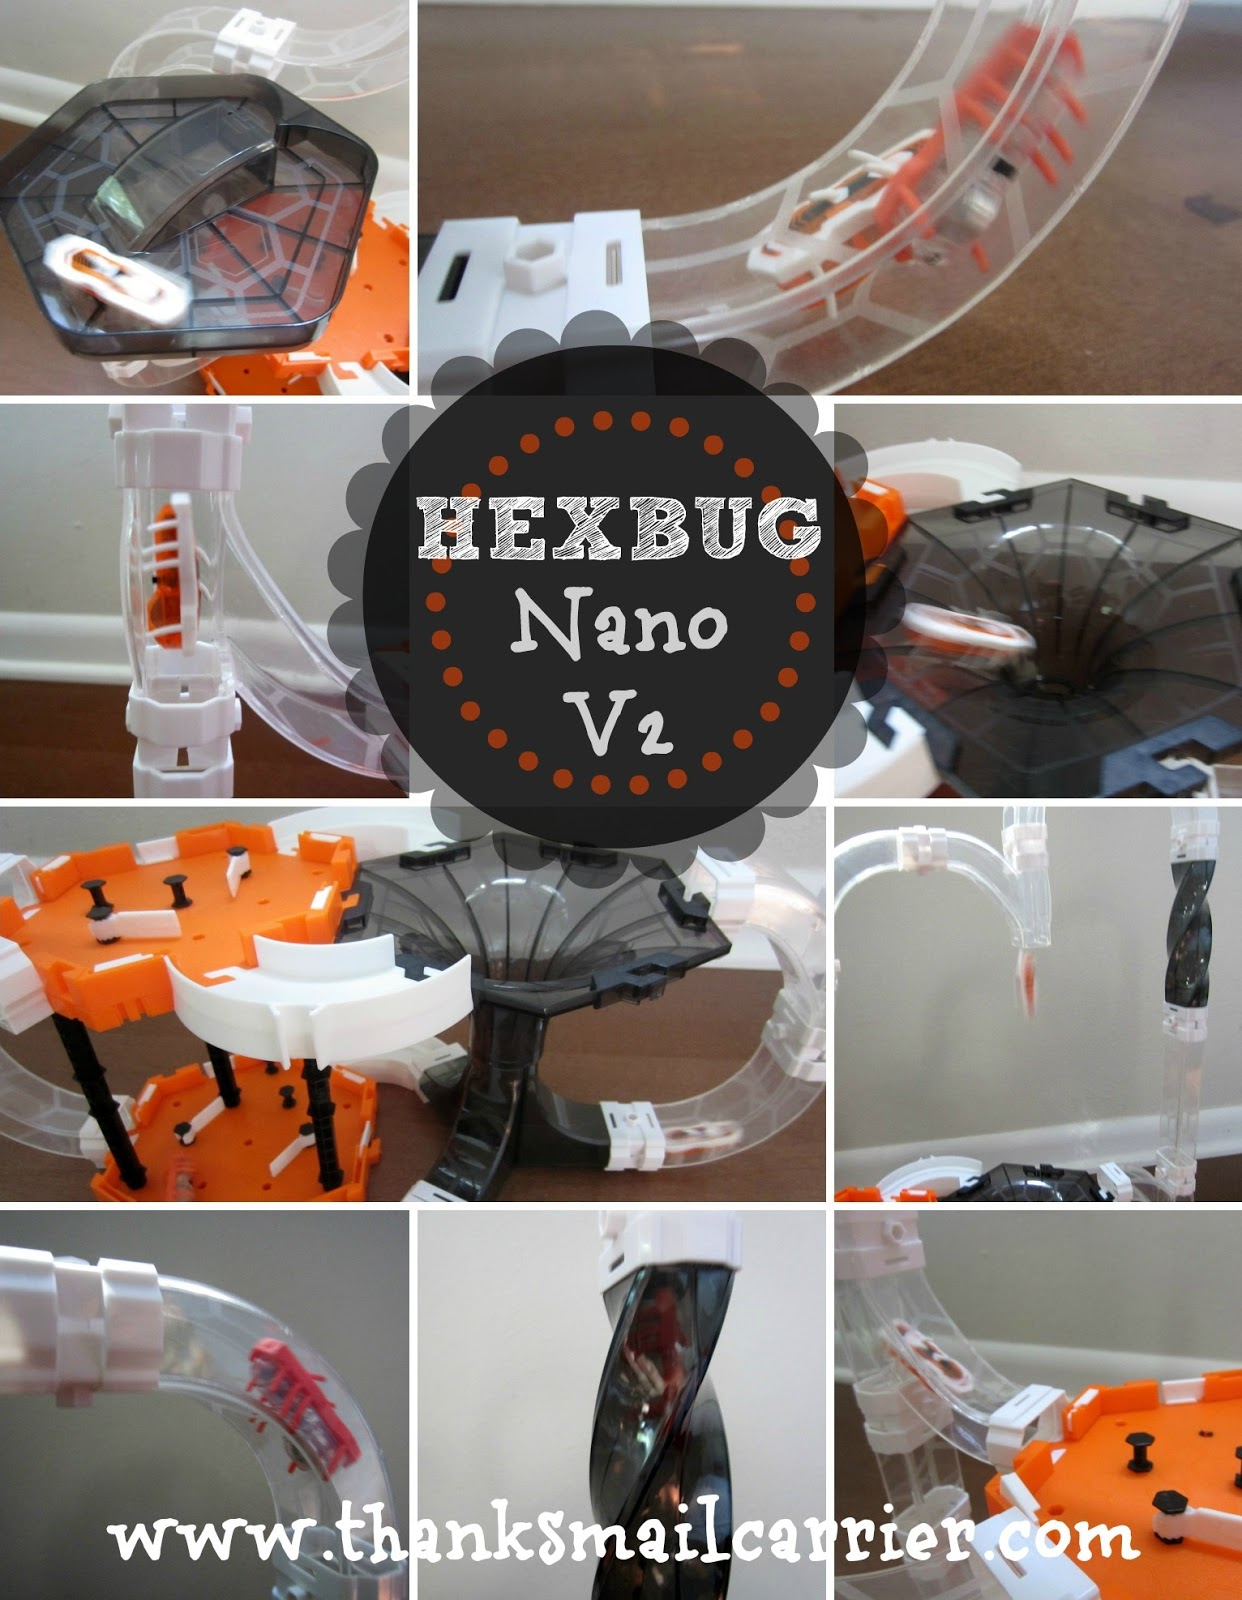 HEXBUG Nano V2 review